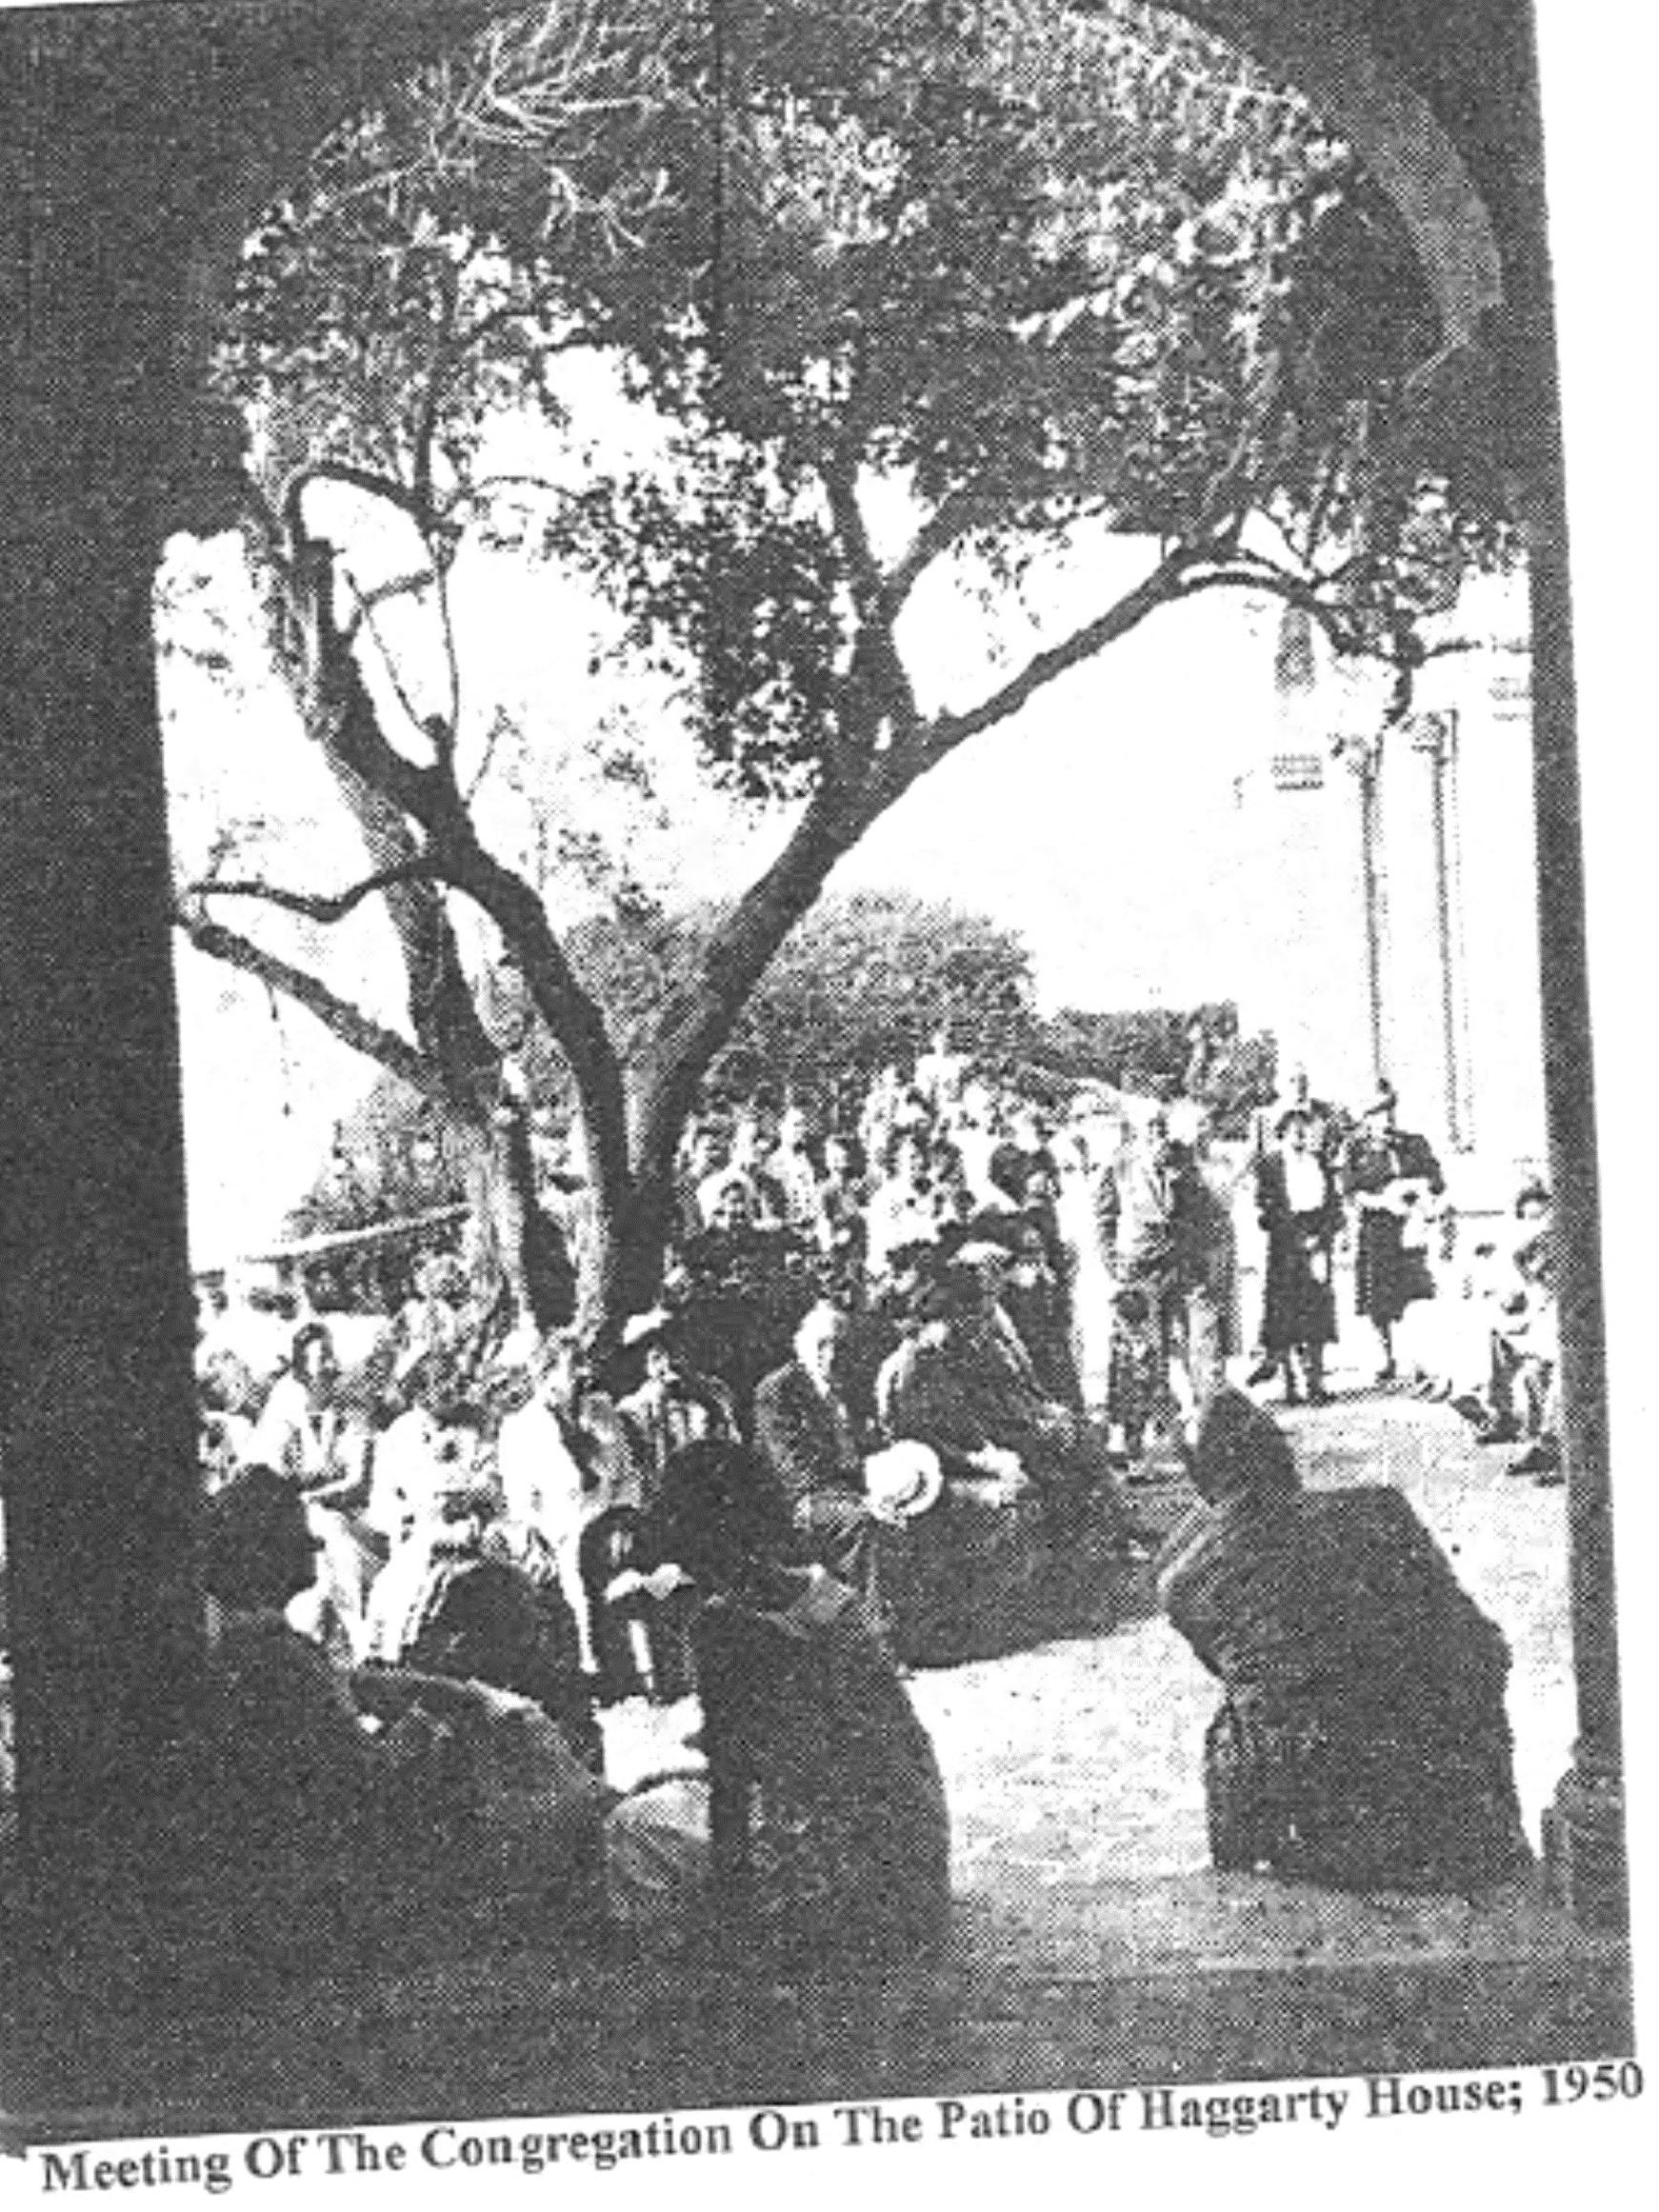 1950 meeting on the patio where the congregation voted whether or not to buy the place